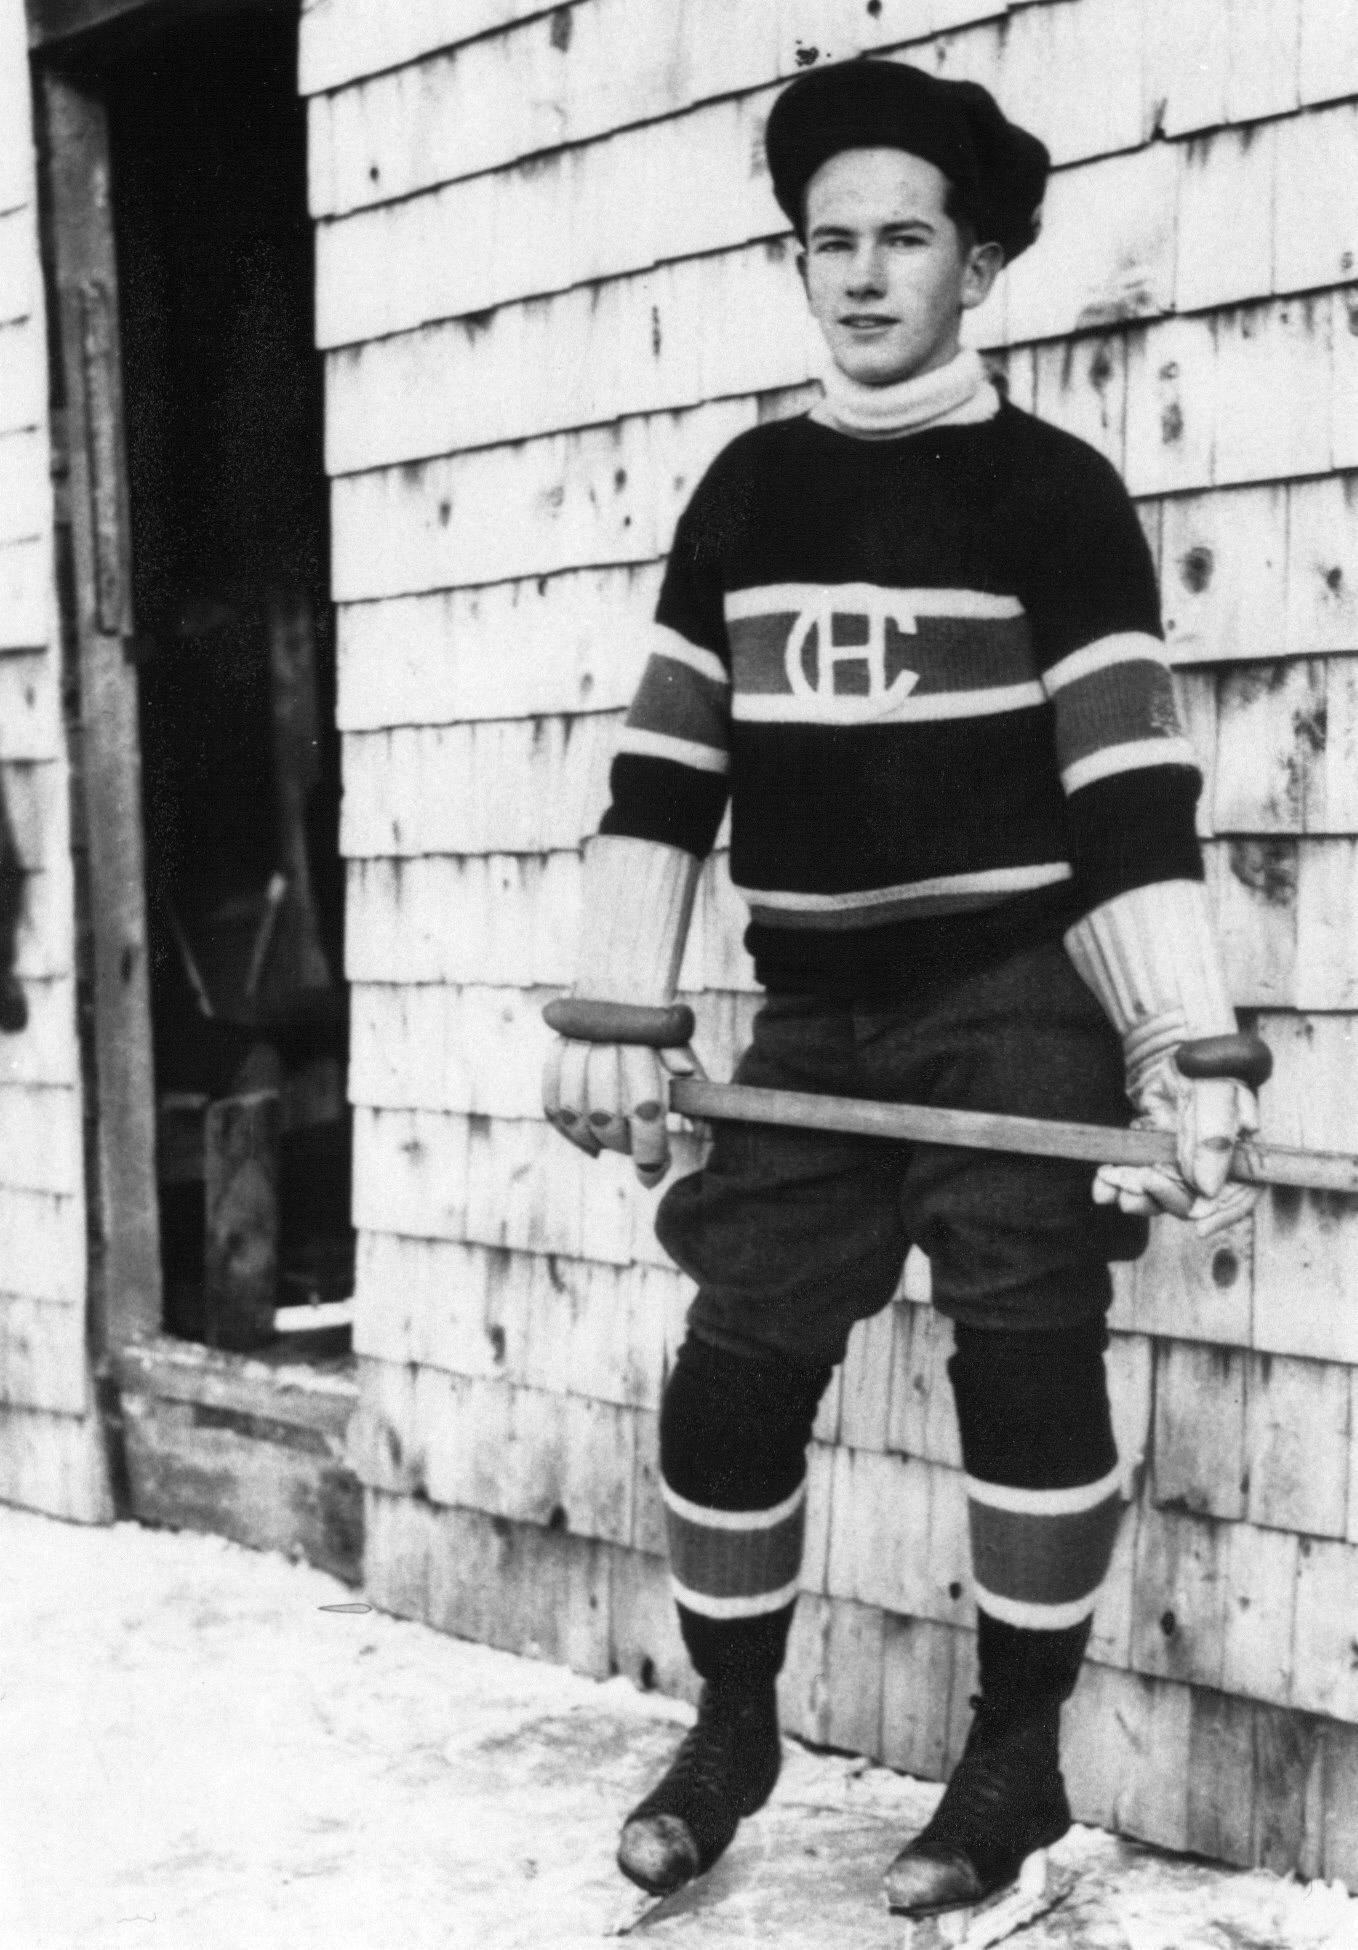 Aubrey McGarvey in Hockey Gear